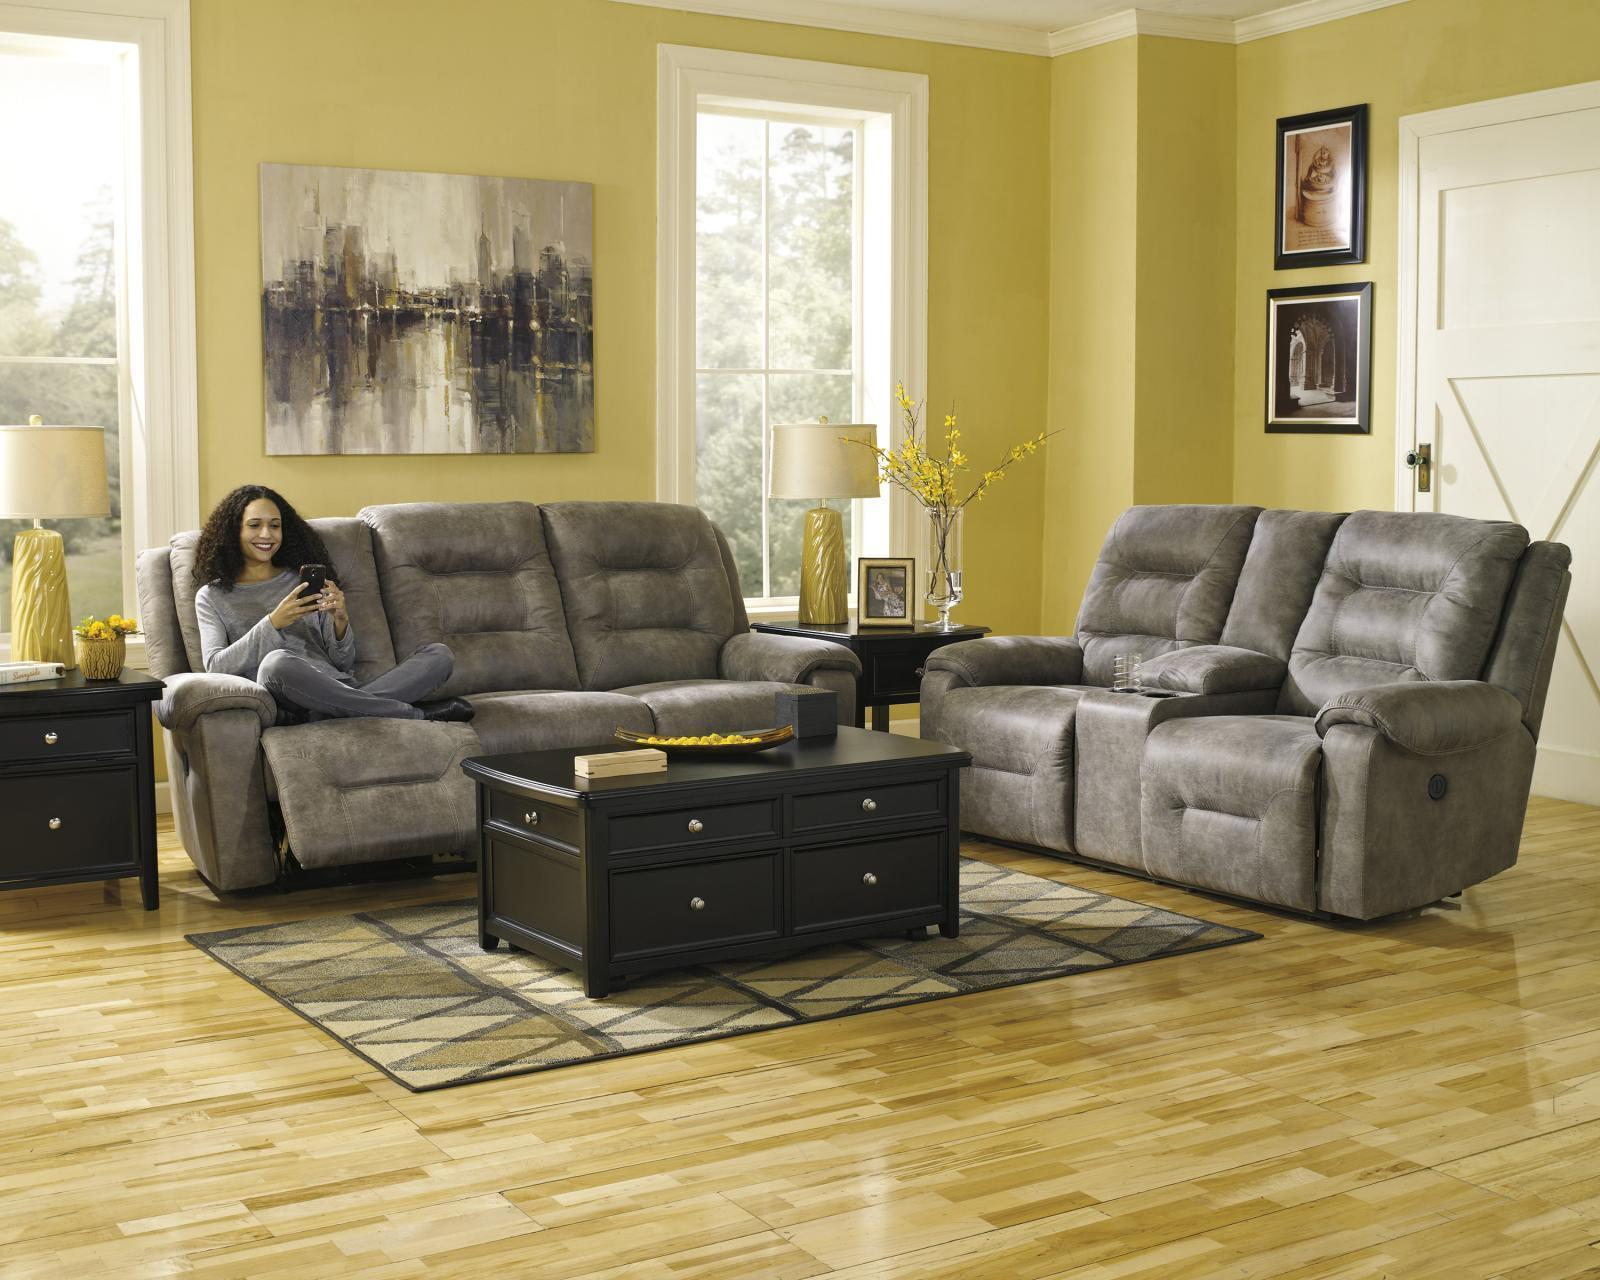 Ashley Rotation 2 Piece Living Room Set in Smoke with Power Contemporary Style